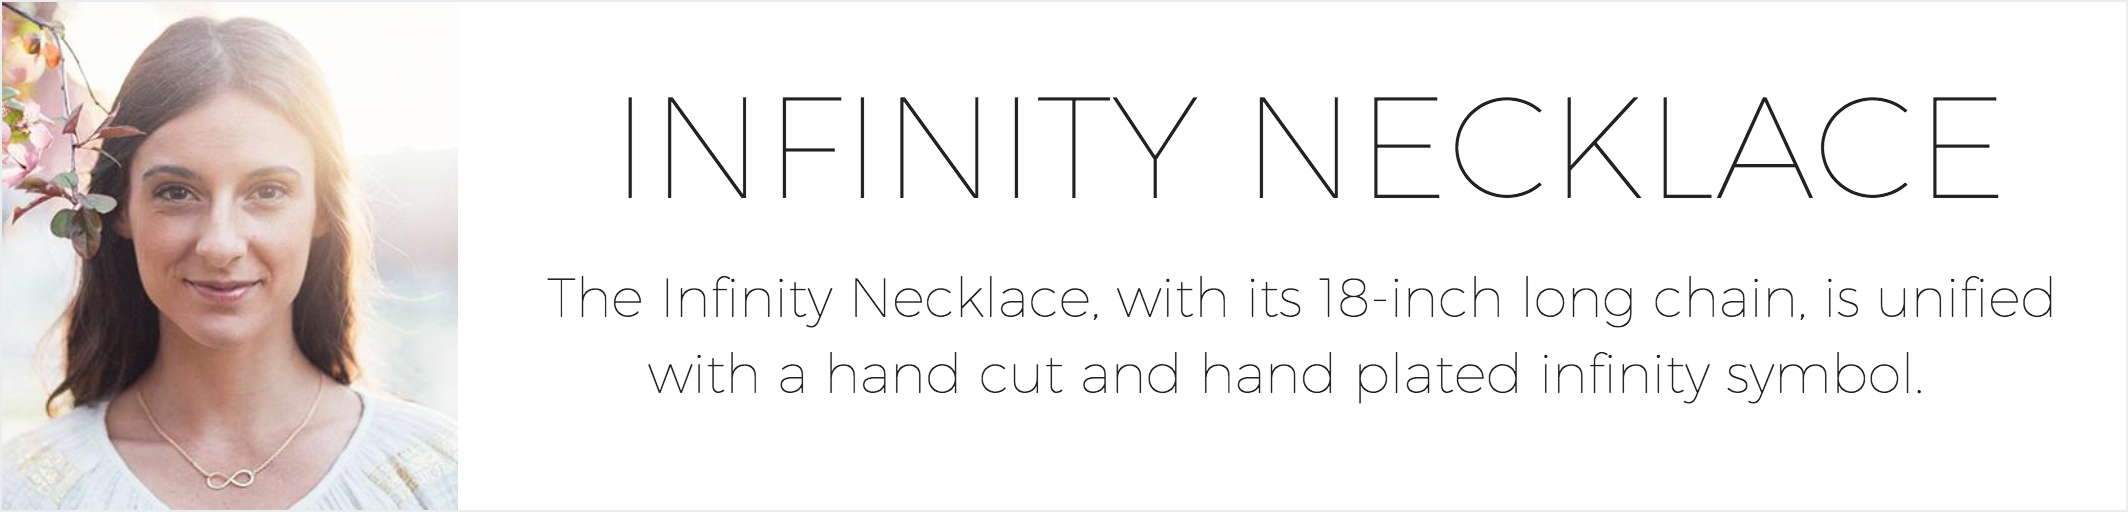 Infinity Necklace Ad